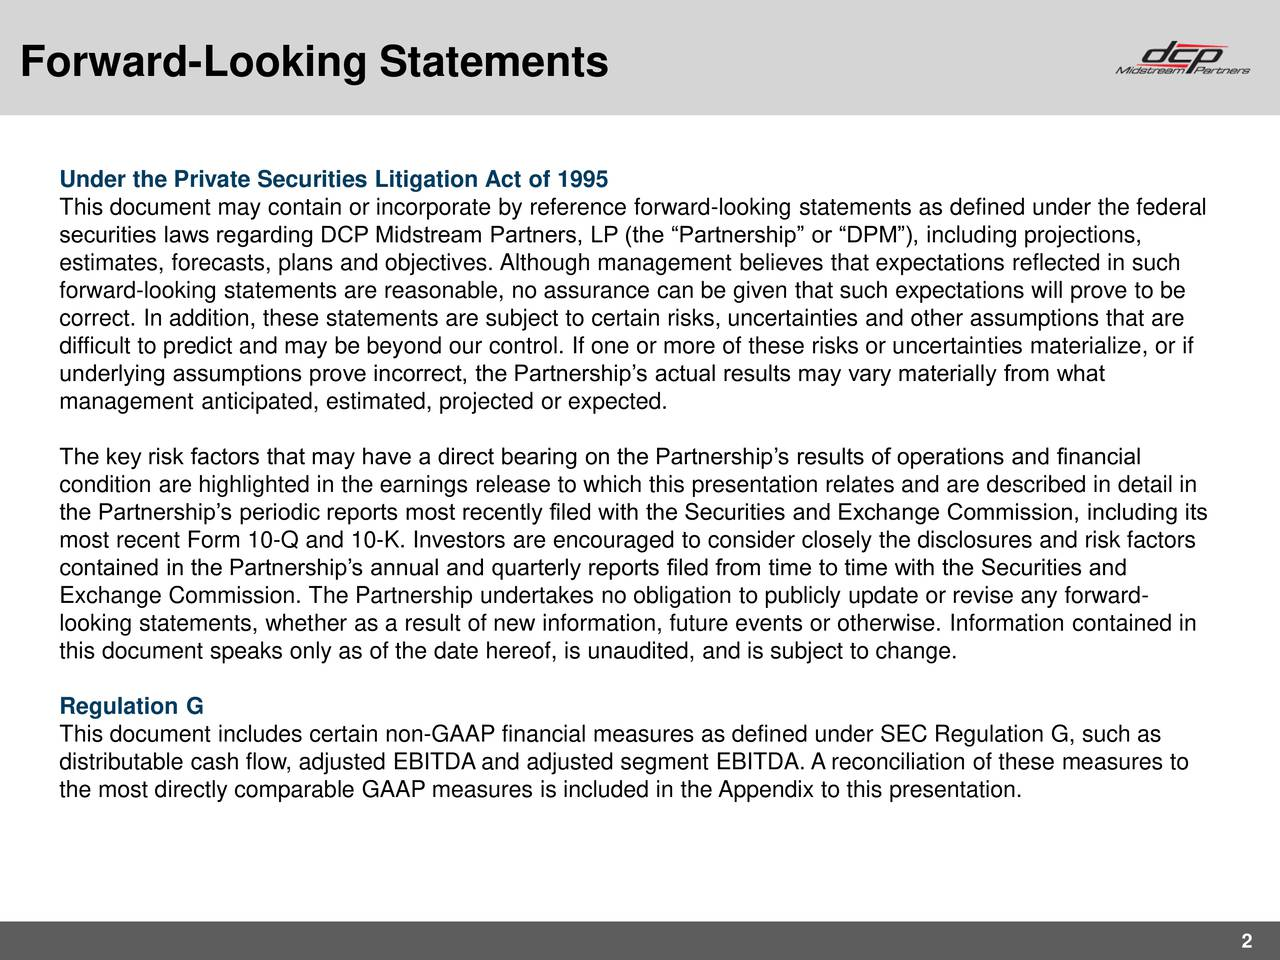 Under the Private Securities Litigation Act of 1995 This document may contain or incorporate by reference forward-looking statements as defined under the federal securities laws regarding DCP Midstream Partners, LP (the Partnership or DPM), including projections, estimates, forecasts, plans and objectives. Although management believes that expectations reflected in such forward-looking statements are reasonable, no assurance can be given that such expectations will prove to be correct. In addition, these statements are subject to certain risks, uncertainties and other assumptions that are difficult to predict and may be beyond our control. If one or more of these risks or uncertainties materialize, or if underlying assumptions prove incorrect, the Partnerships actual results may vary materially from what management anticipated, estimated, projected or expected. The key risk factors that may have a direct bearing on the Partnerships results of operations and financial condition are highlighted in the earnings release to which this presentation relates and are described in detail in the Partnerships periodic reports most recently filed with the Securities and Exchange Commission, including its most recent Form 10-Q and 10-K. Investors are encouraged to consider closely the disclosures and risk factors contained in the Partnerships annual and quarterly reports filed from time to time with the Securities and Exchange Commission. The Partnership undertakes no obligation to publicly update or revise any forward- looking statements, whether as a result of new information, future events or otherwise. Information contained in this document speaks only as of the date hereof, is unaudited, and is subject to change. Regulation G This document includes certain non-GAAP financial measures as defined under SEC Regulation G, such as distributable cash flow, adjusted EBITDA and adjusted segment EBITDA. A reconciliation of these measures to the most directly comparable GAAP measures 